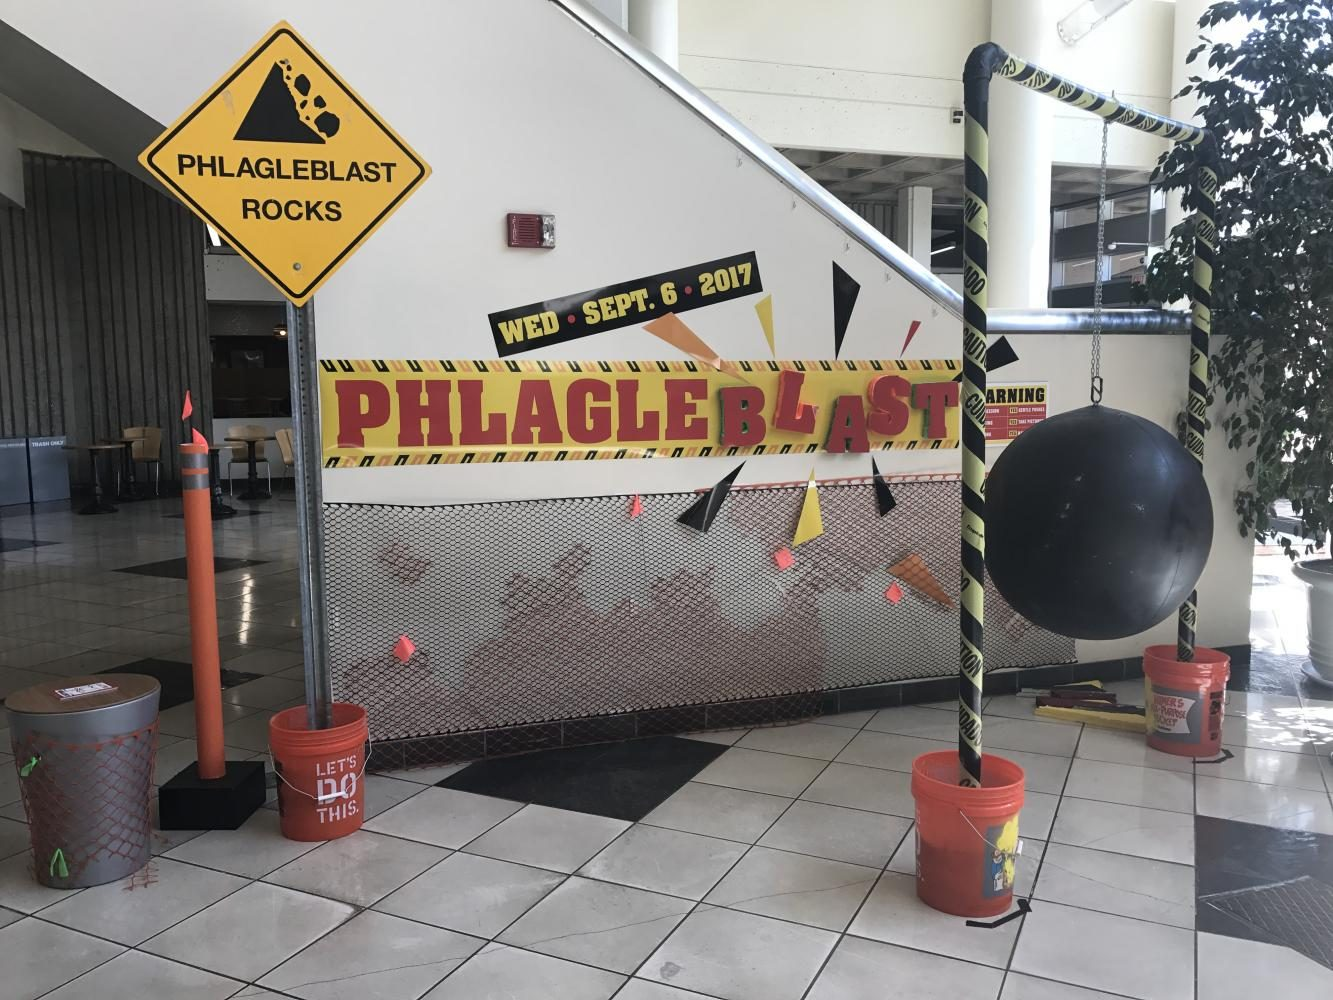 The University Union embraces the chaos of construction and uses it as a theme to this year's 18th annual Phlagleblast open house on Sept. 6.